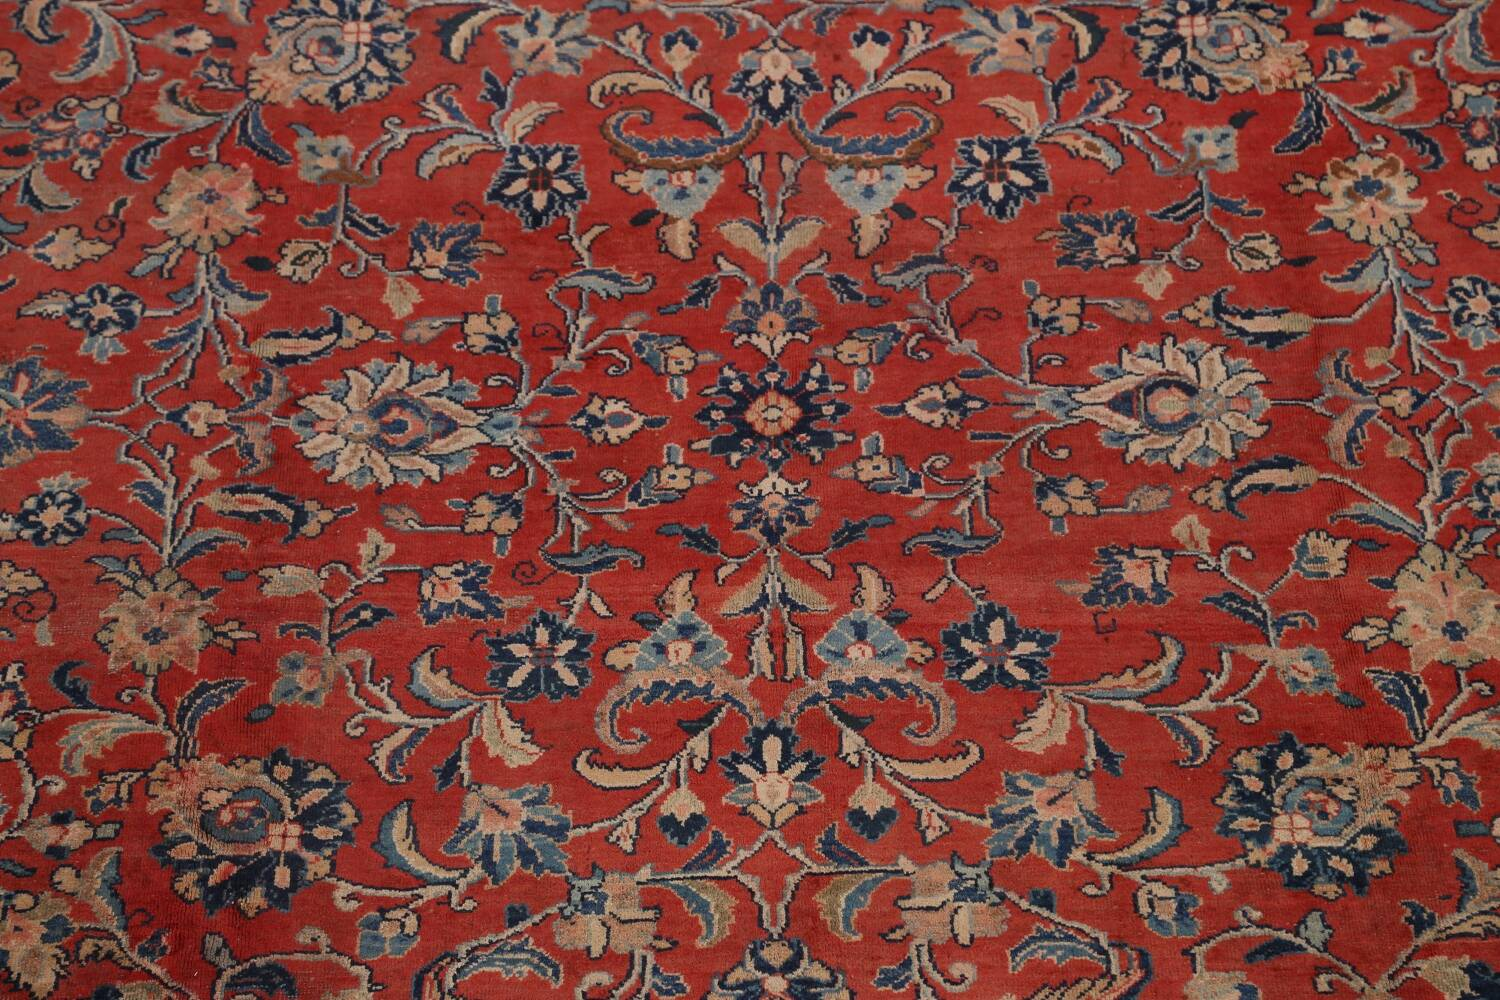 Antique Floral Mahal Persian Area Rug 10x14 image 4